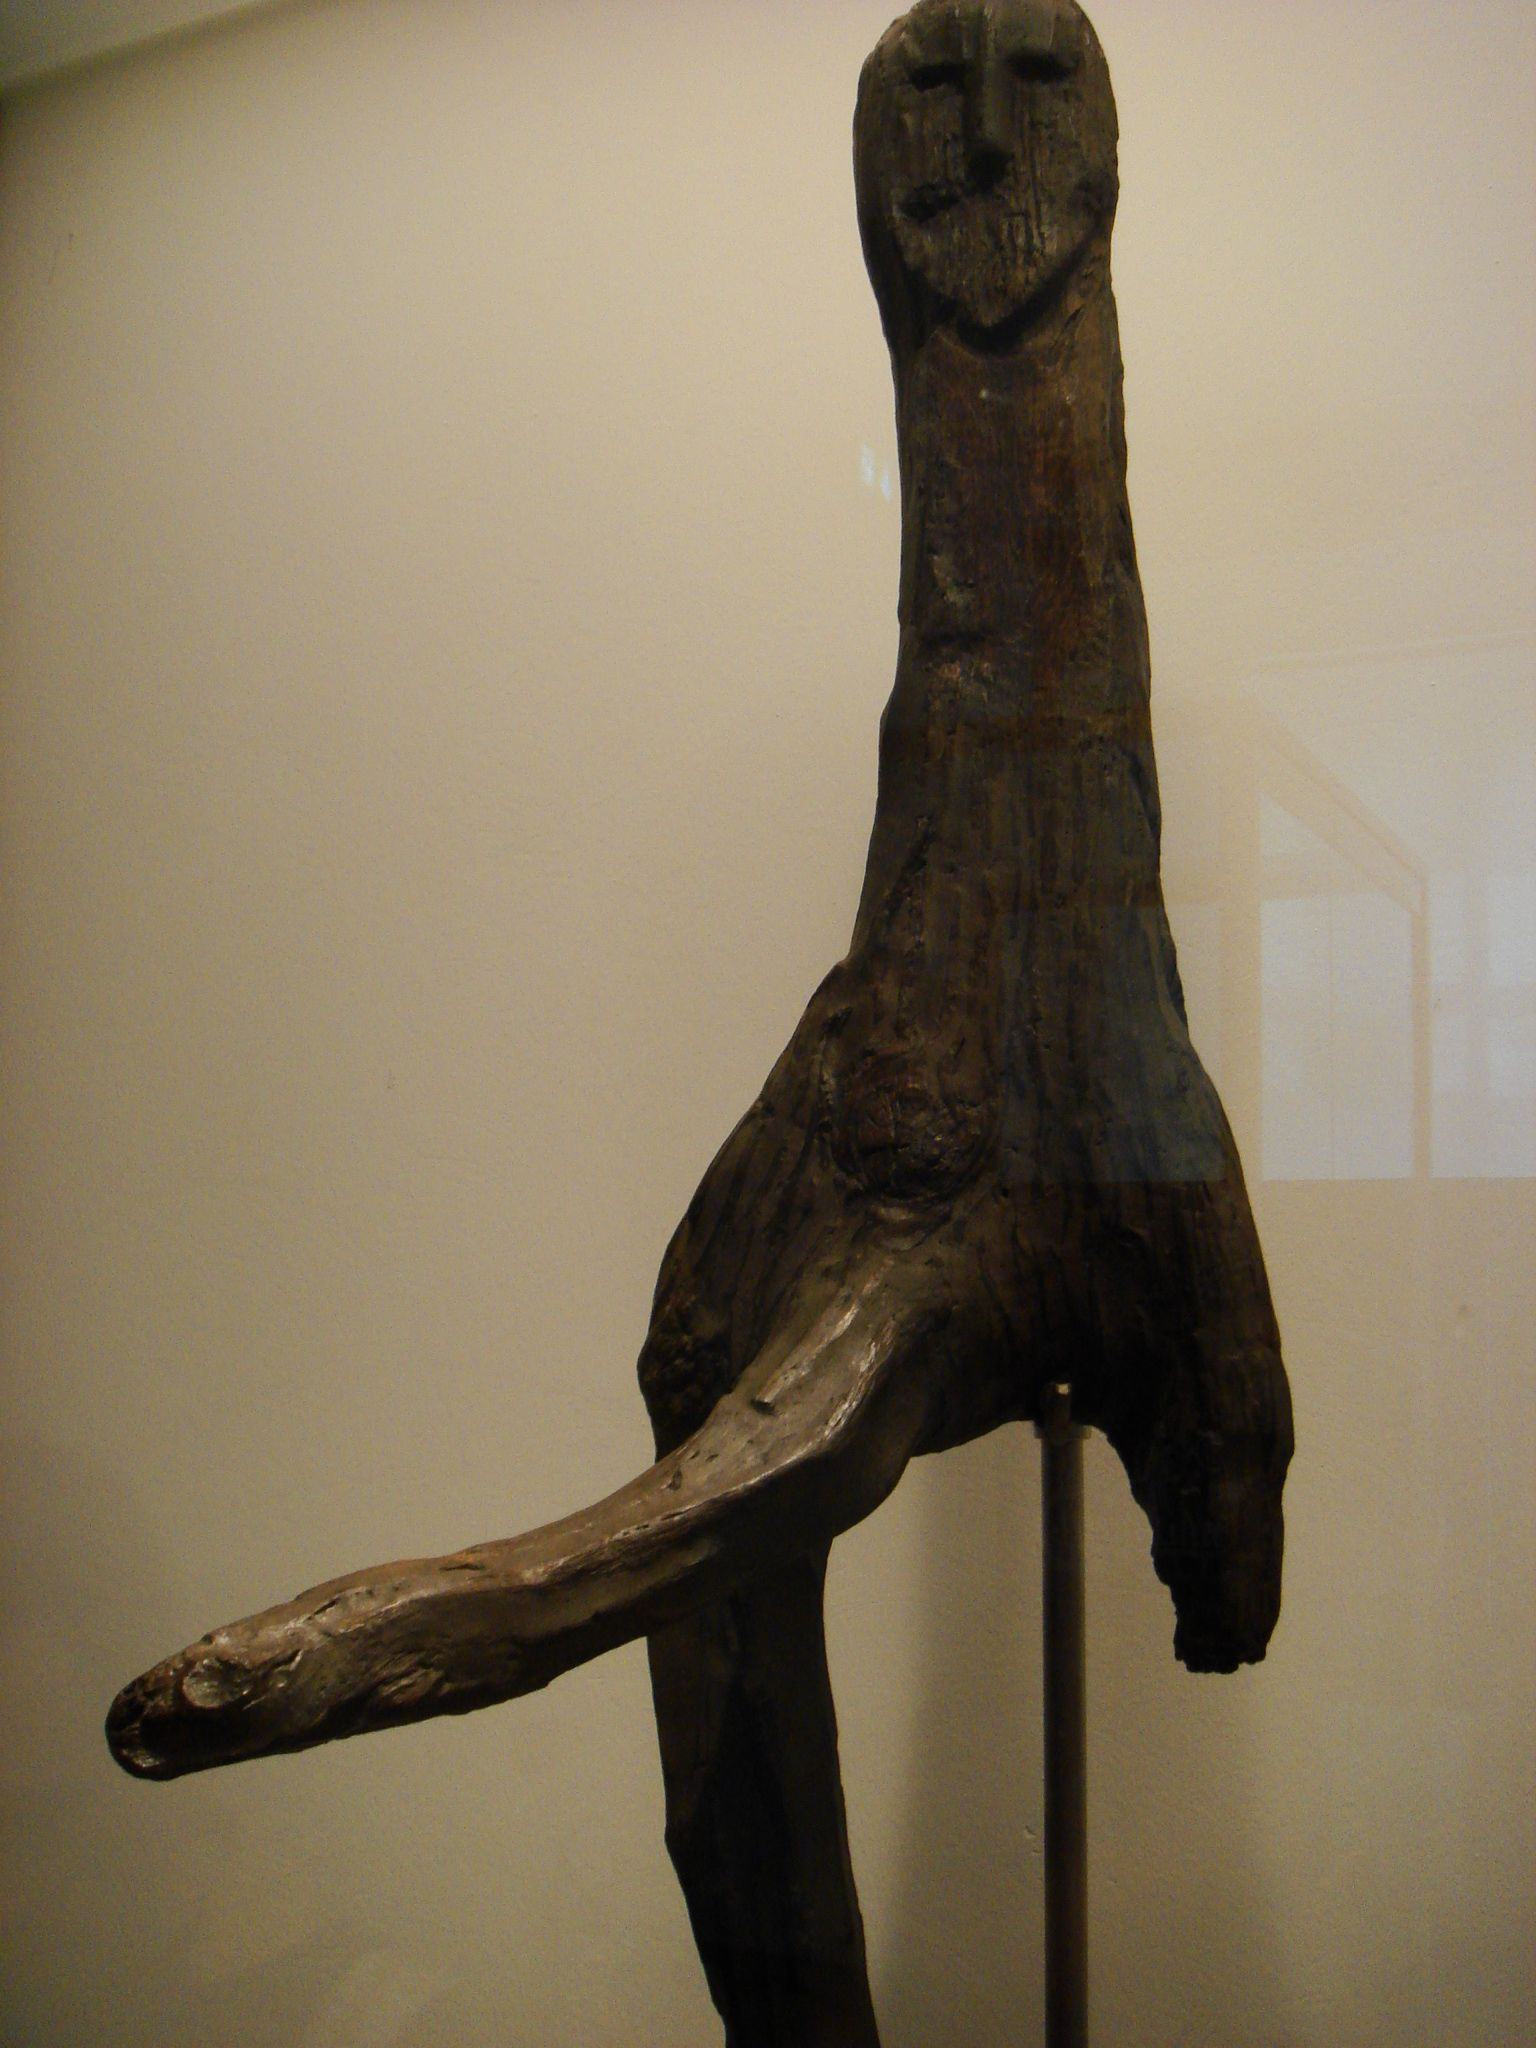 The Broddenbjerg idol is a wooden ithyphallic figure found in a bog at Broddenbjerg, near Viborg, Denmark and now in the National Museum of Denmark in Copenhagen. It is dated to approximately 535–520 BCE.